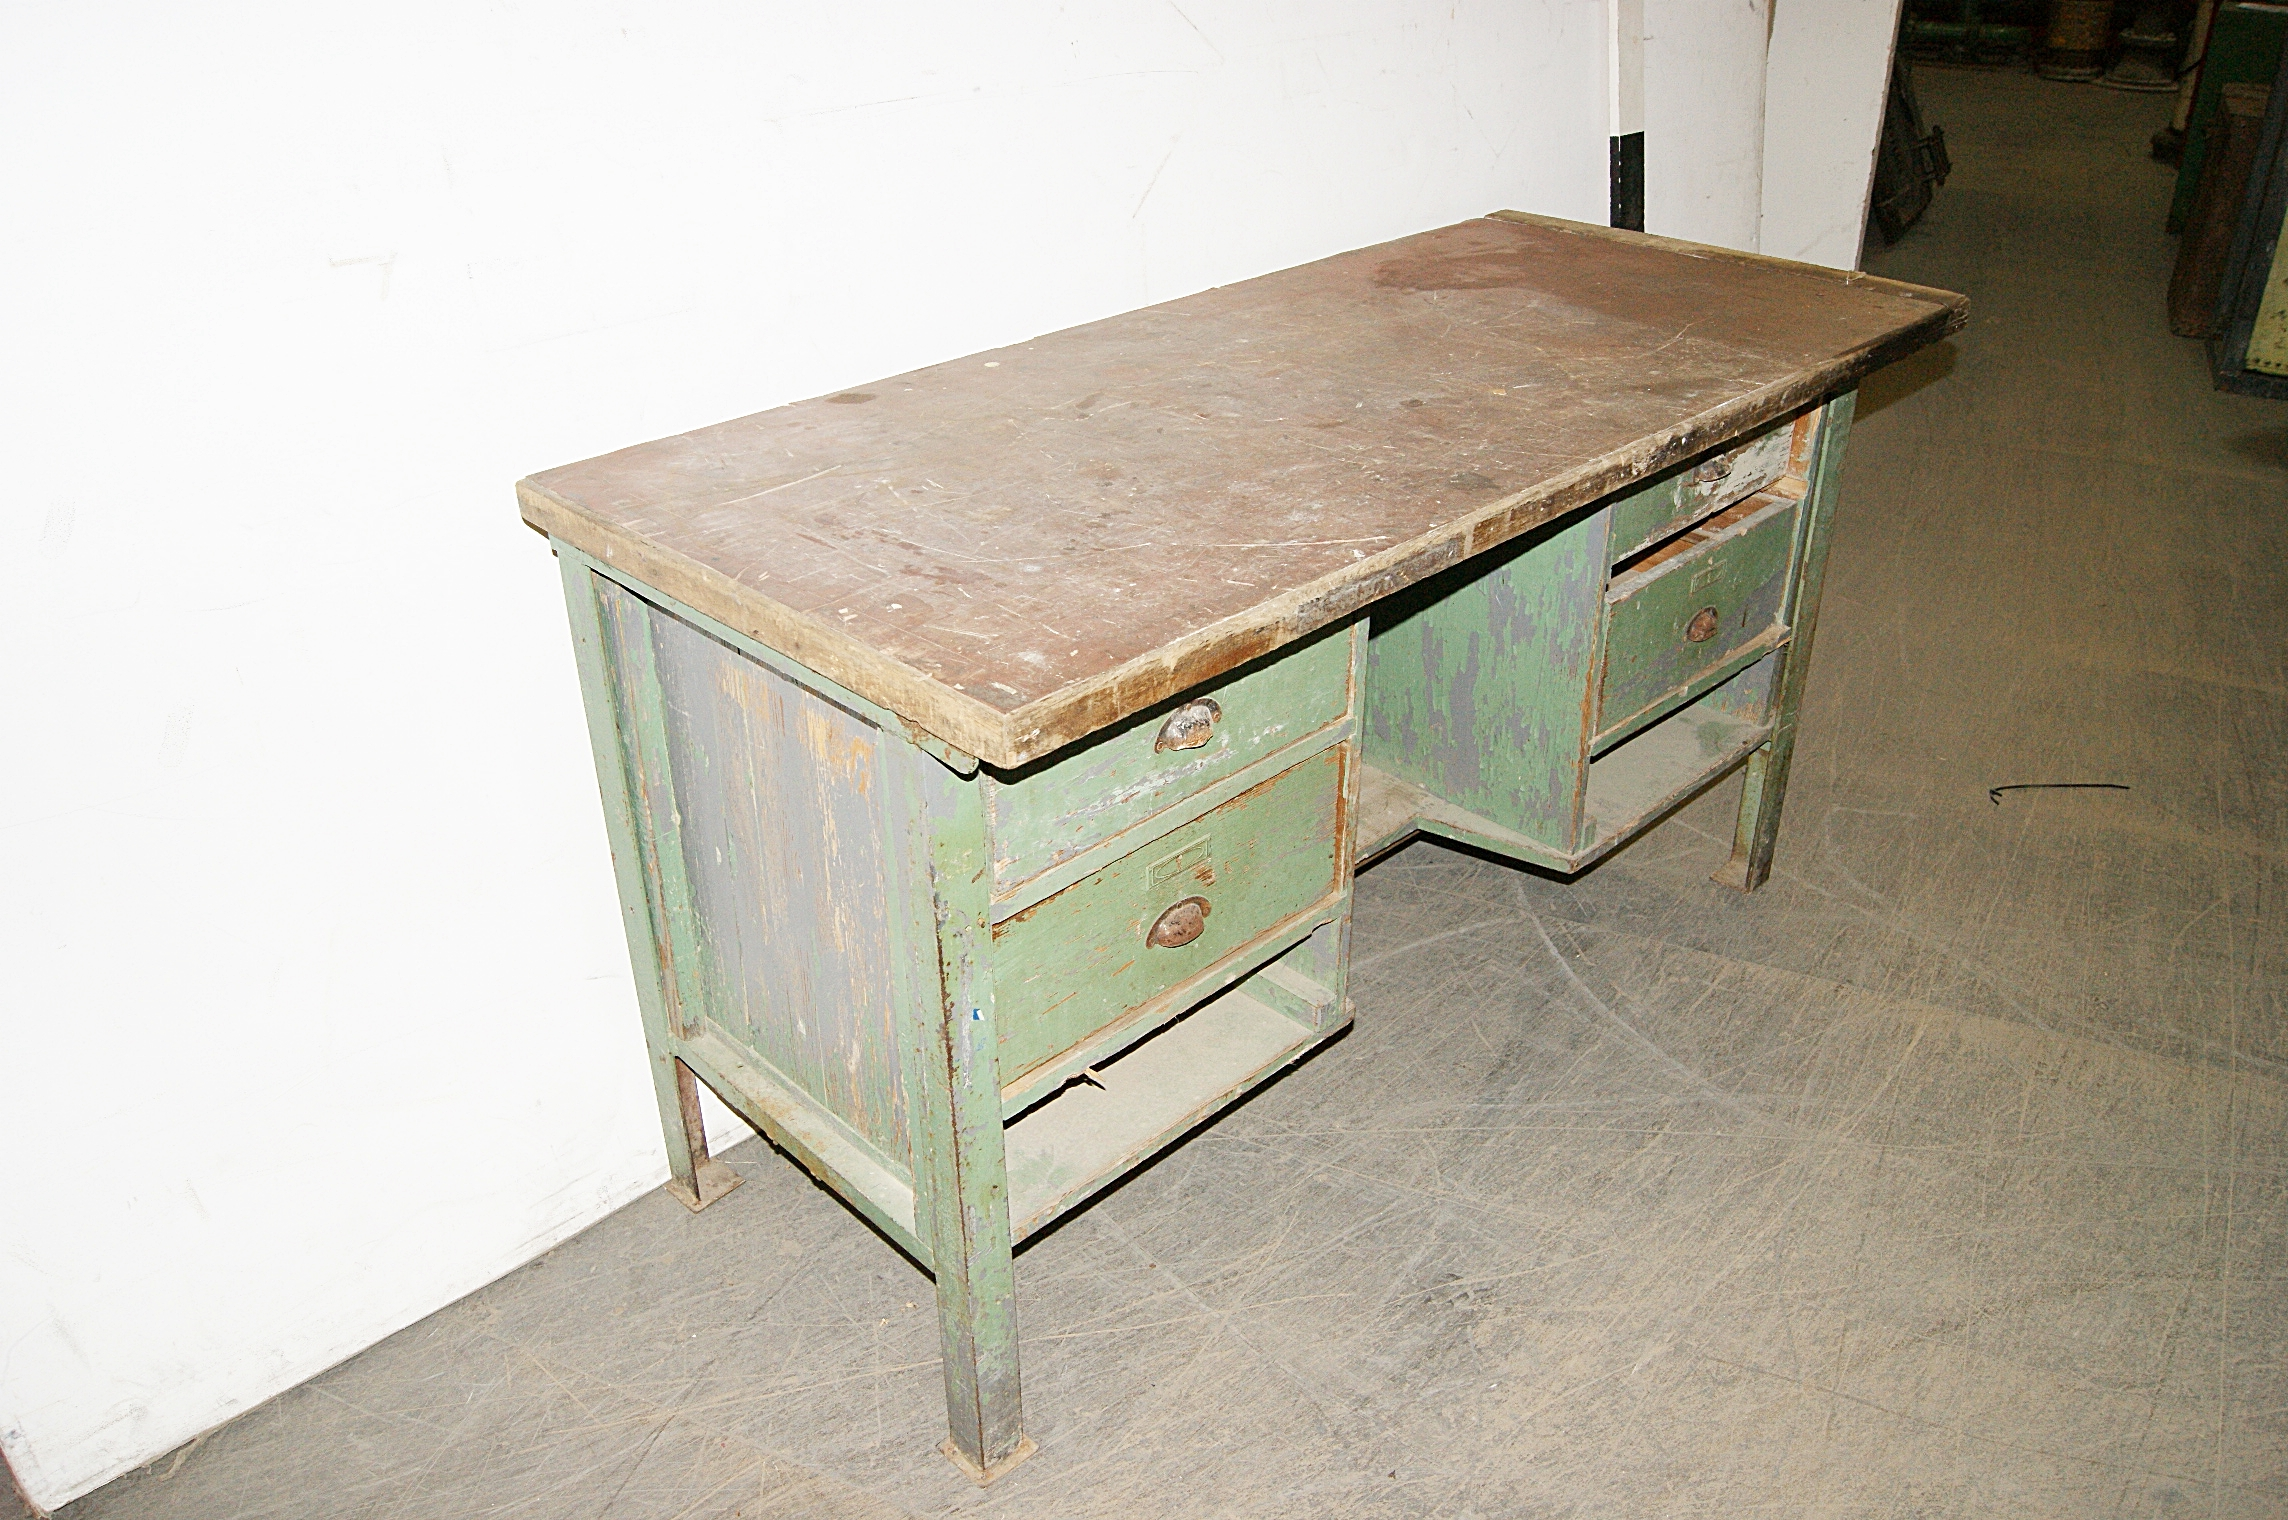 Wooden workbench with drawers h cm